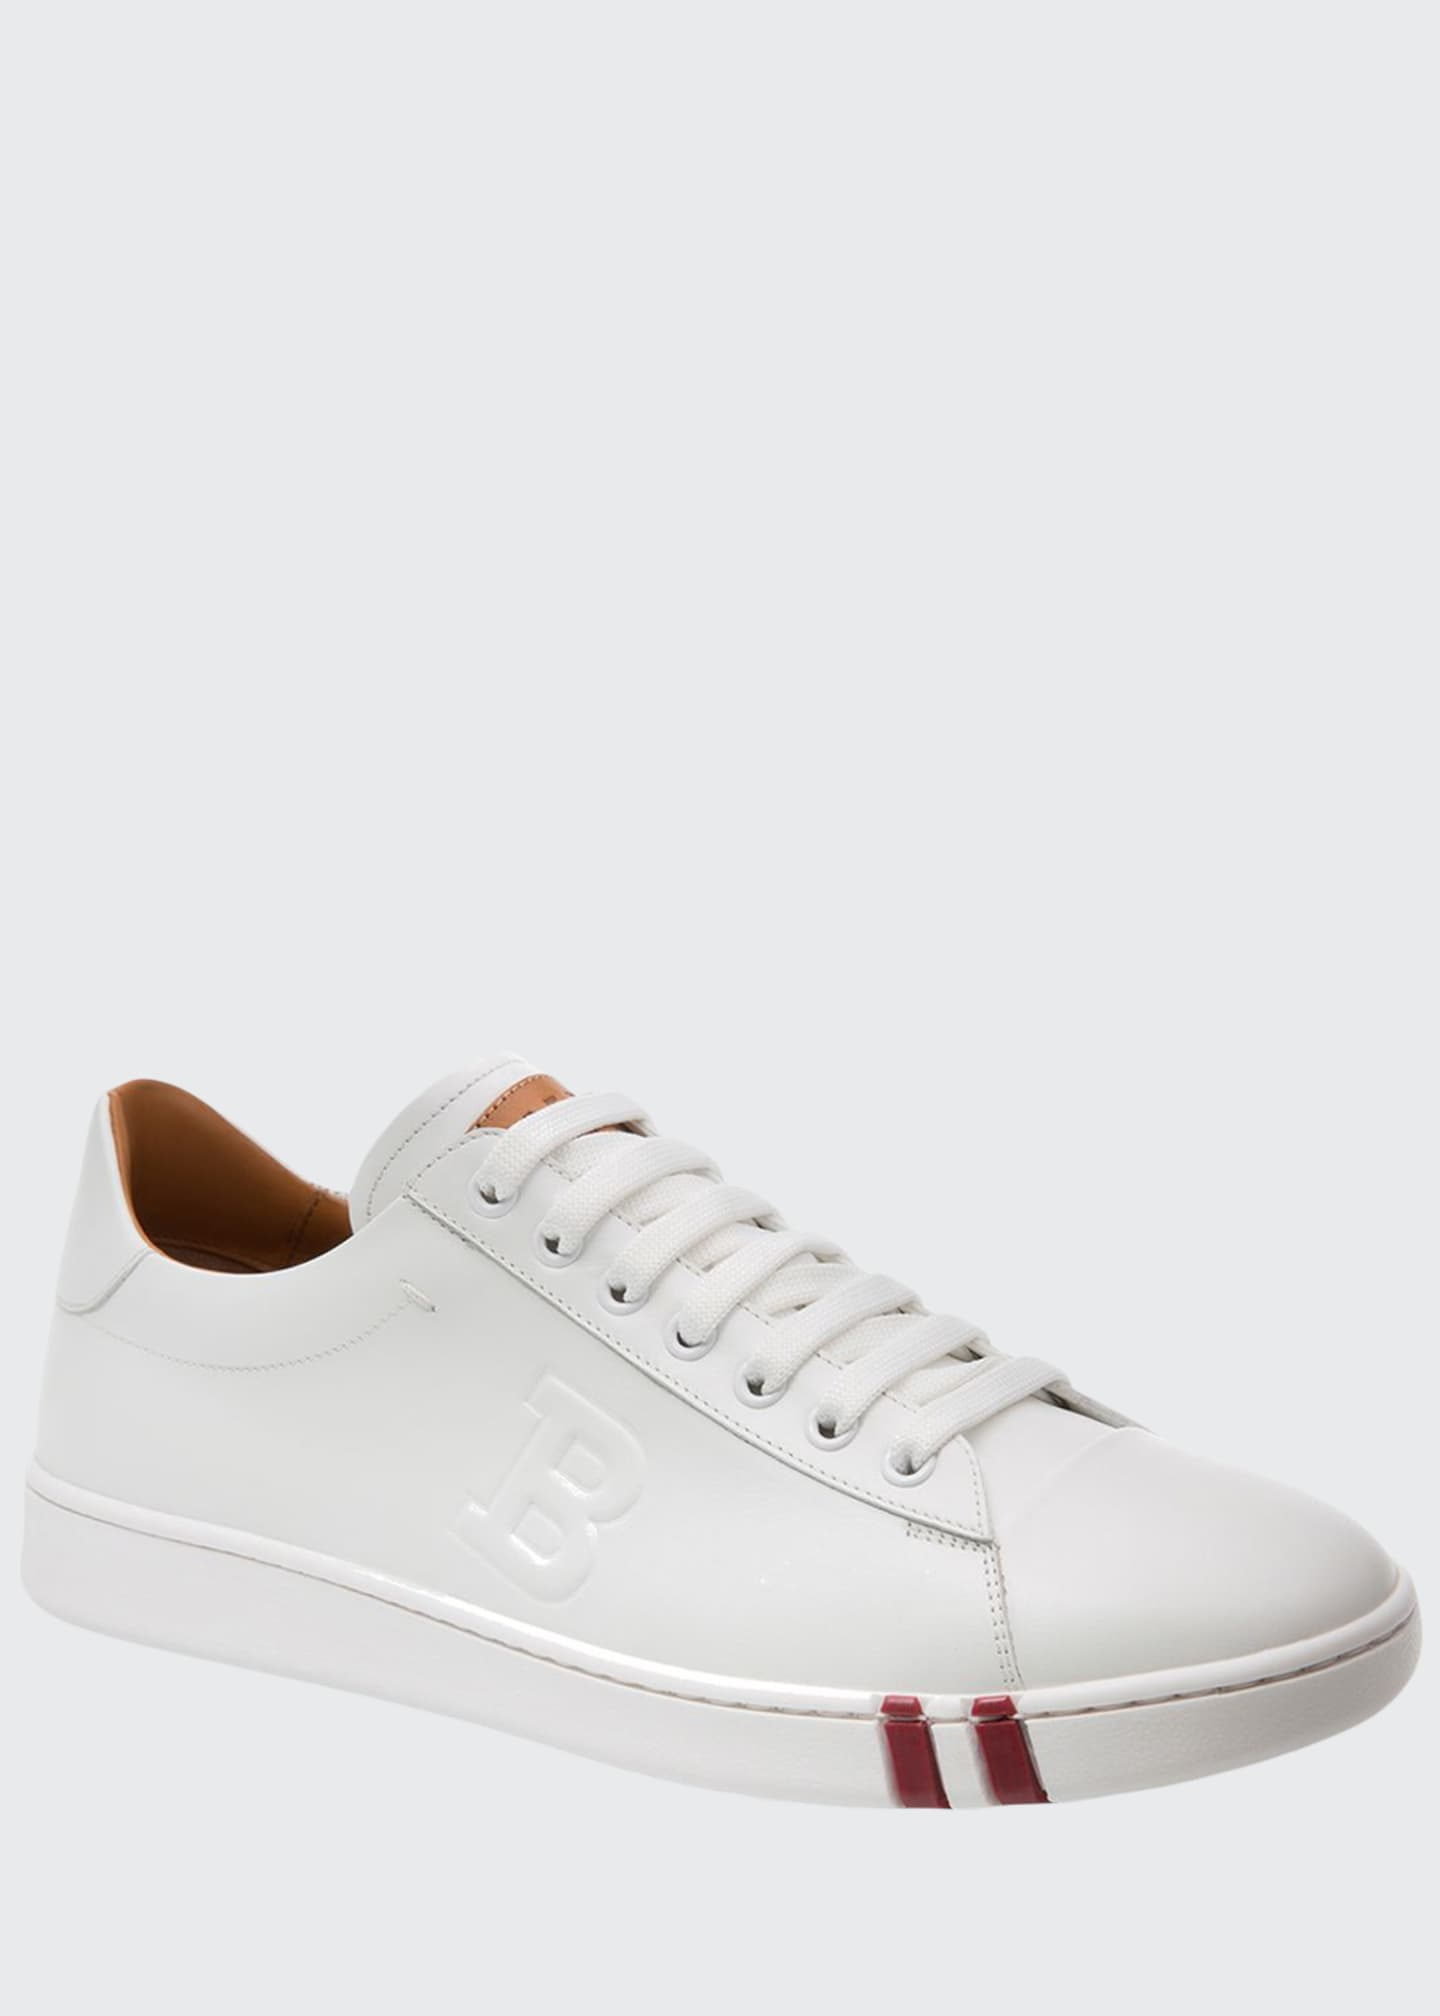 Bally Men's Asher Leather Low-Top Sneakers